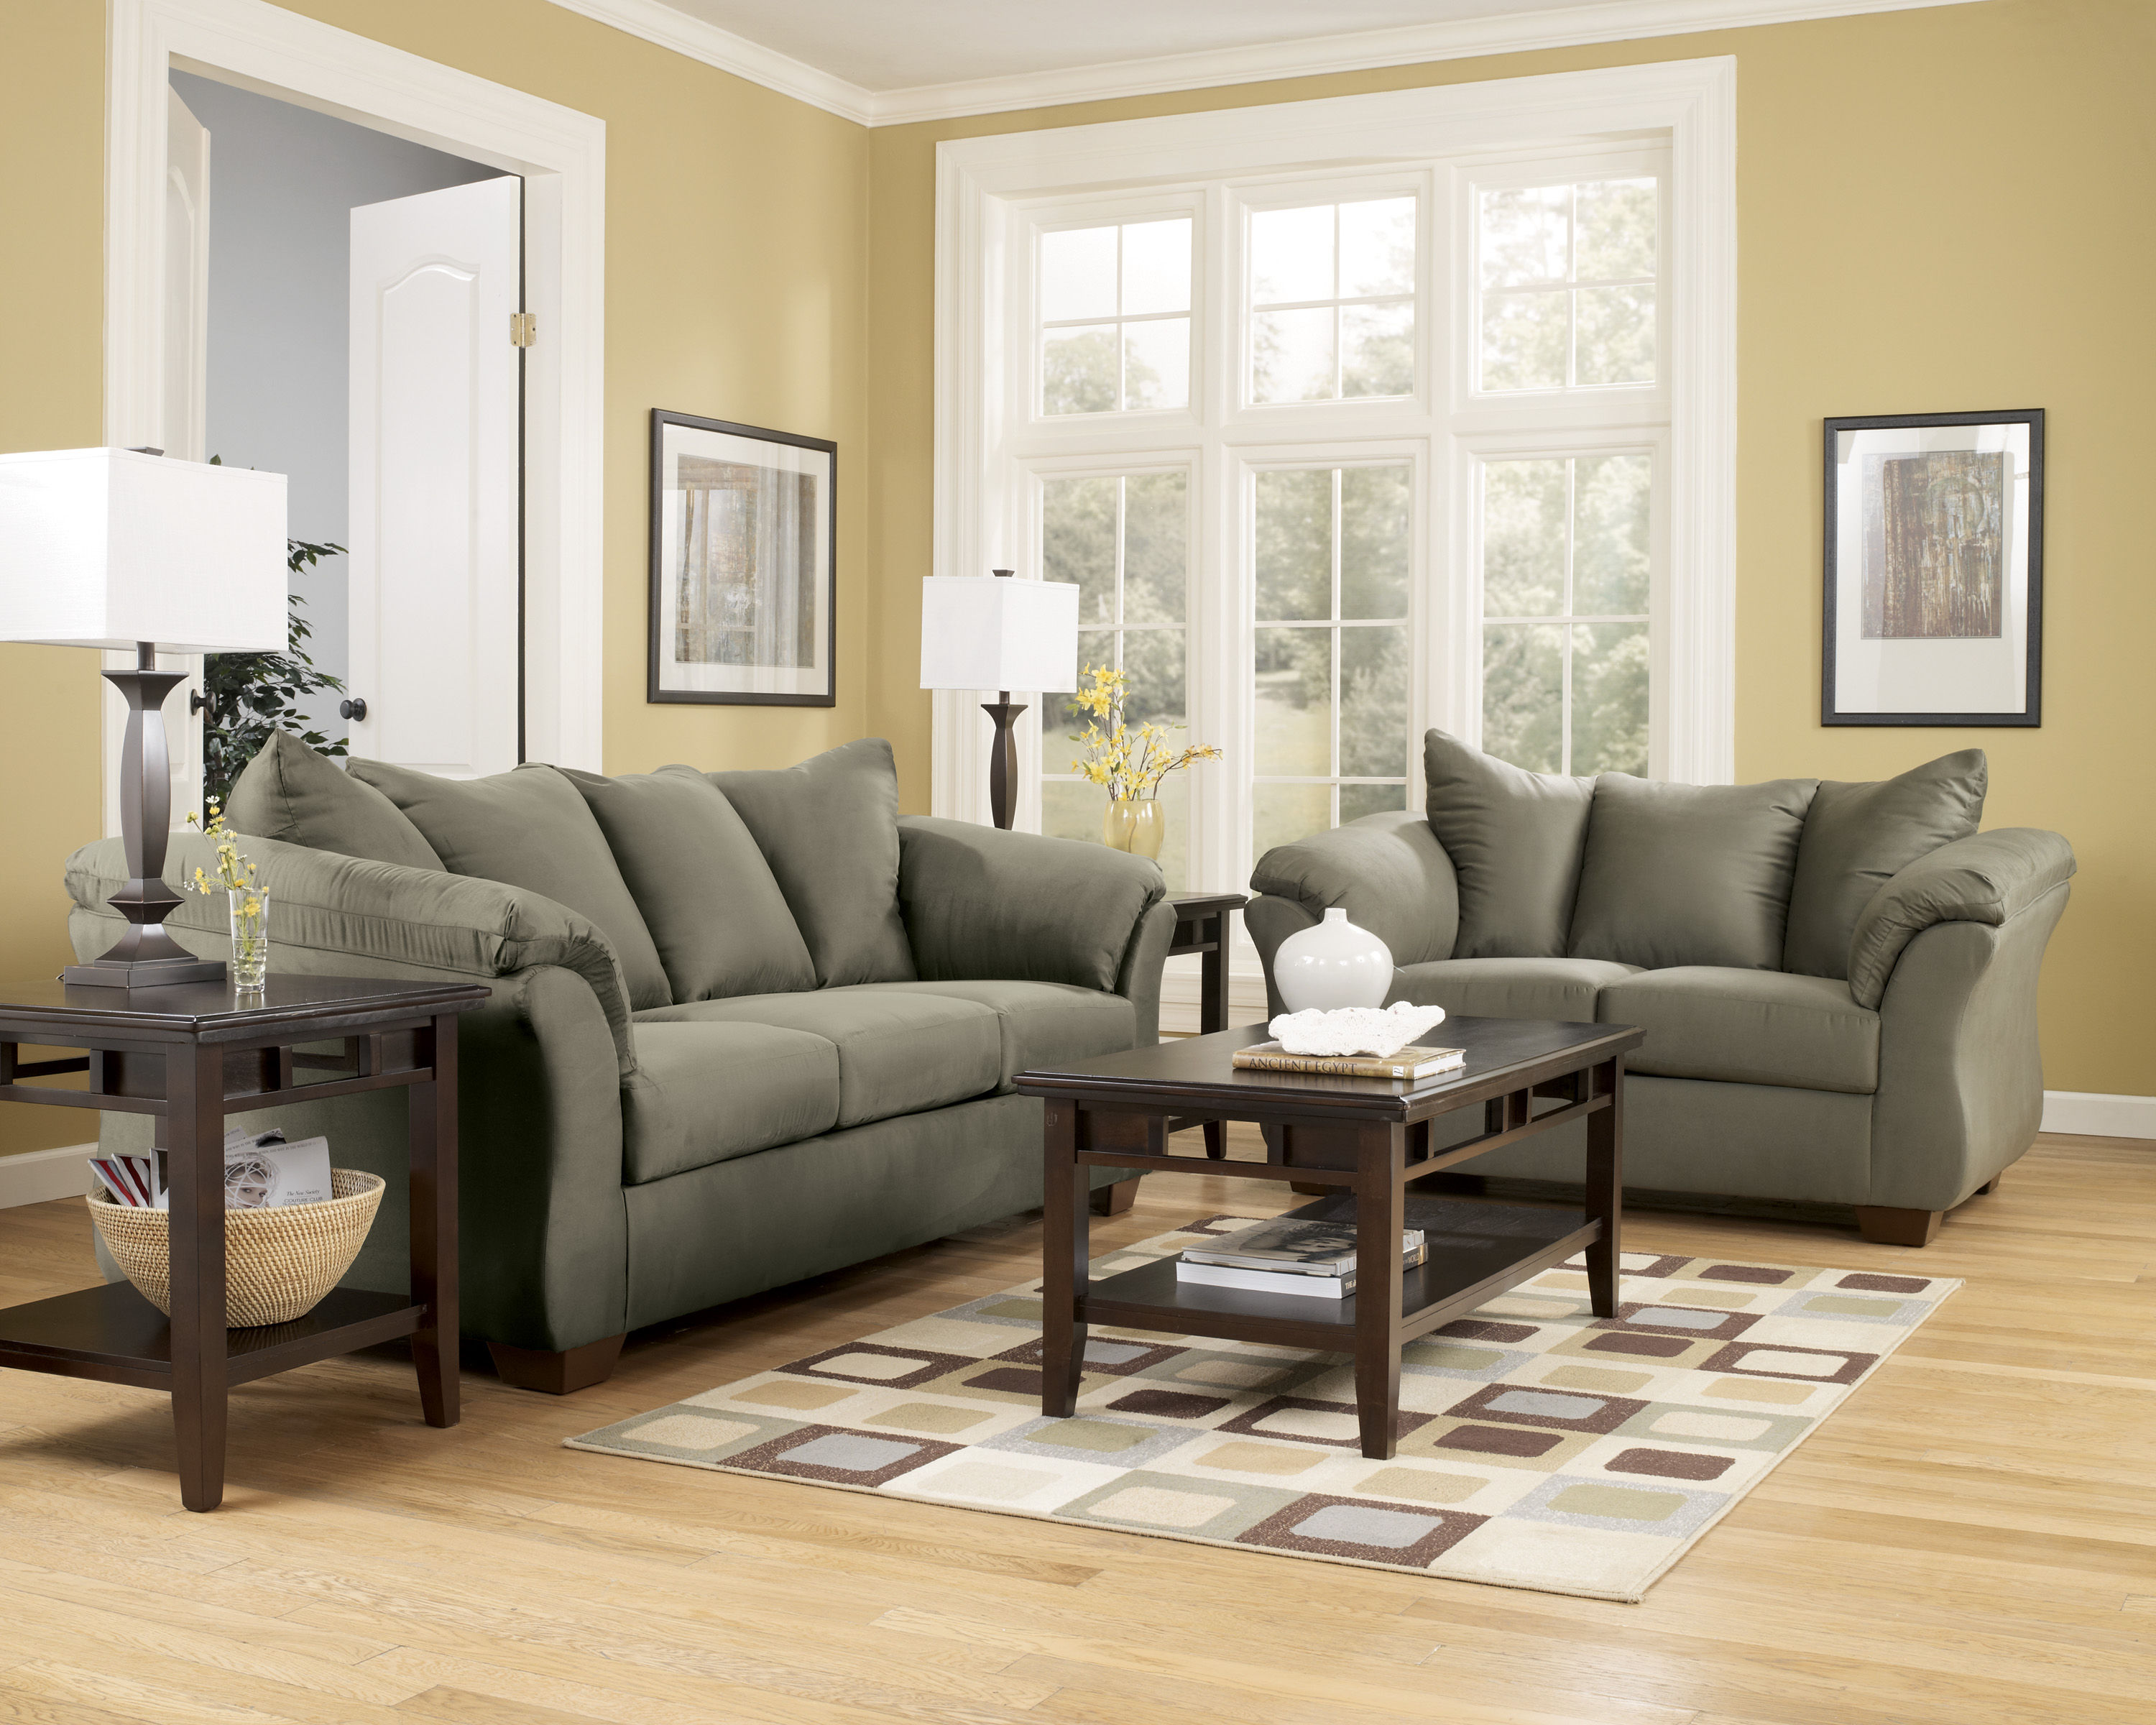 Ashley Furniture Darcy Sage 3pc Living Room Set The Classy Home